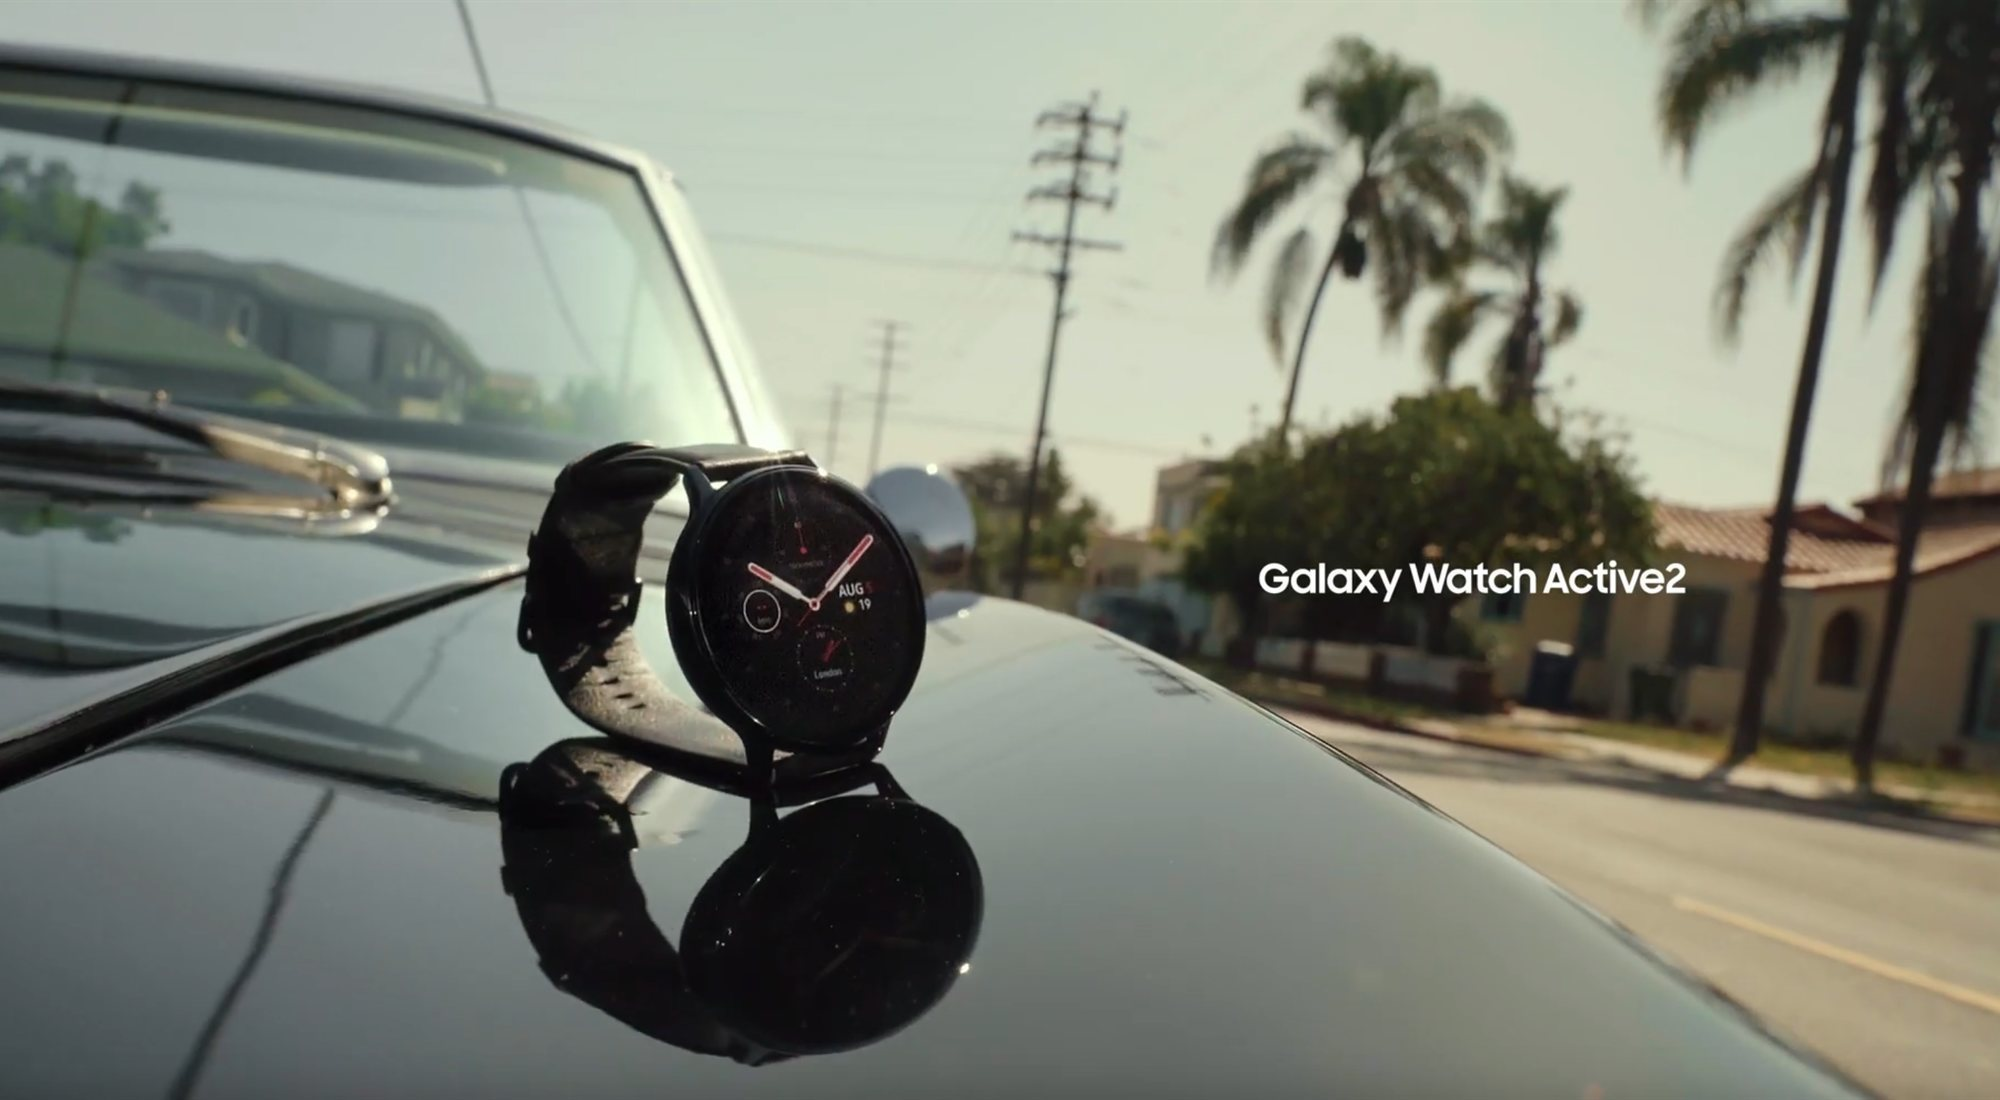 Samsung Galaxy Watch Active 2: características y precio